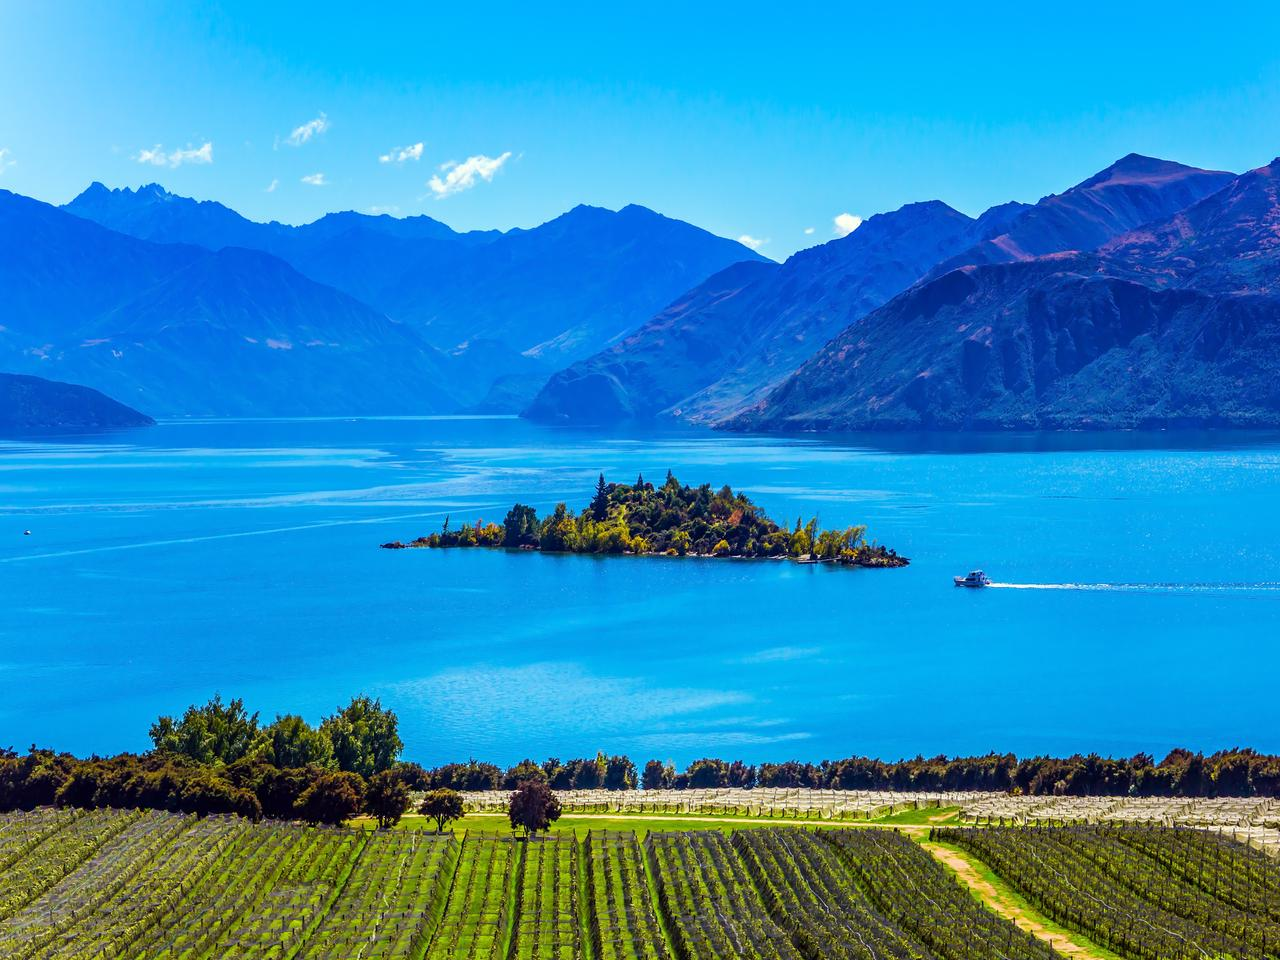 Fabulously beautiful Lake Wanaka. In the middle of the lake is a wonderful little island. Exotic journey to the South Island of New Zealand. Concept of active and ecological tourism